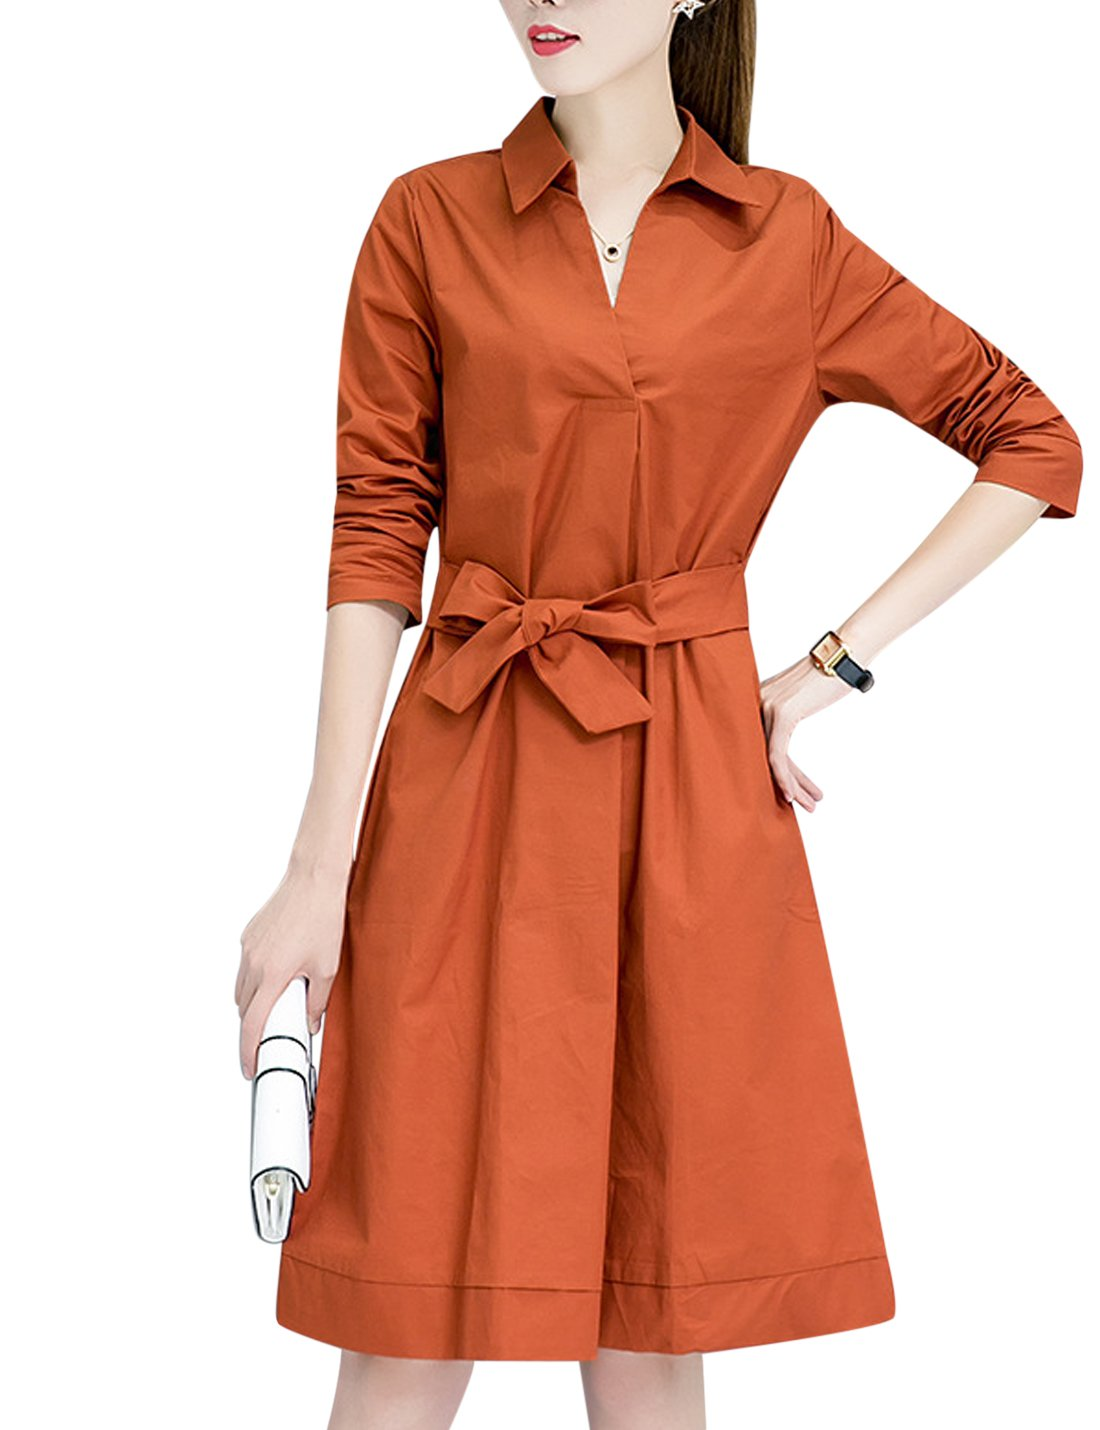 Available at Amazon: Tanming Women's Long Sleeve Belted A-Line Midi Shirt Dress